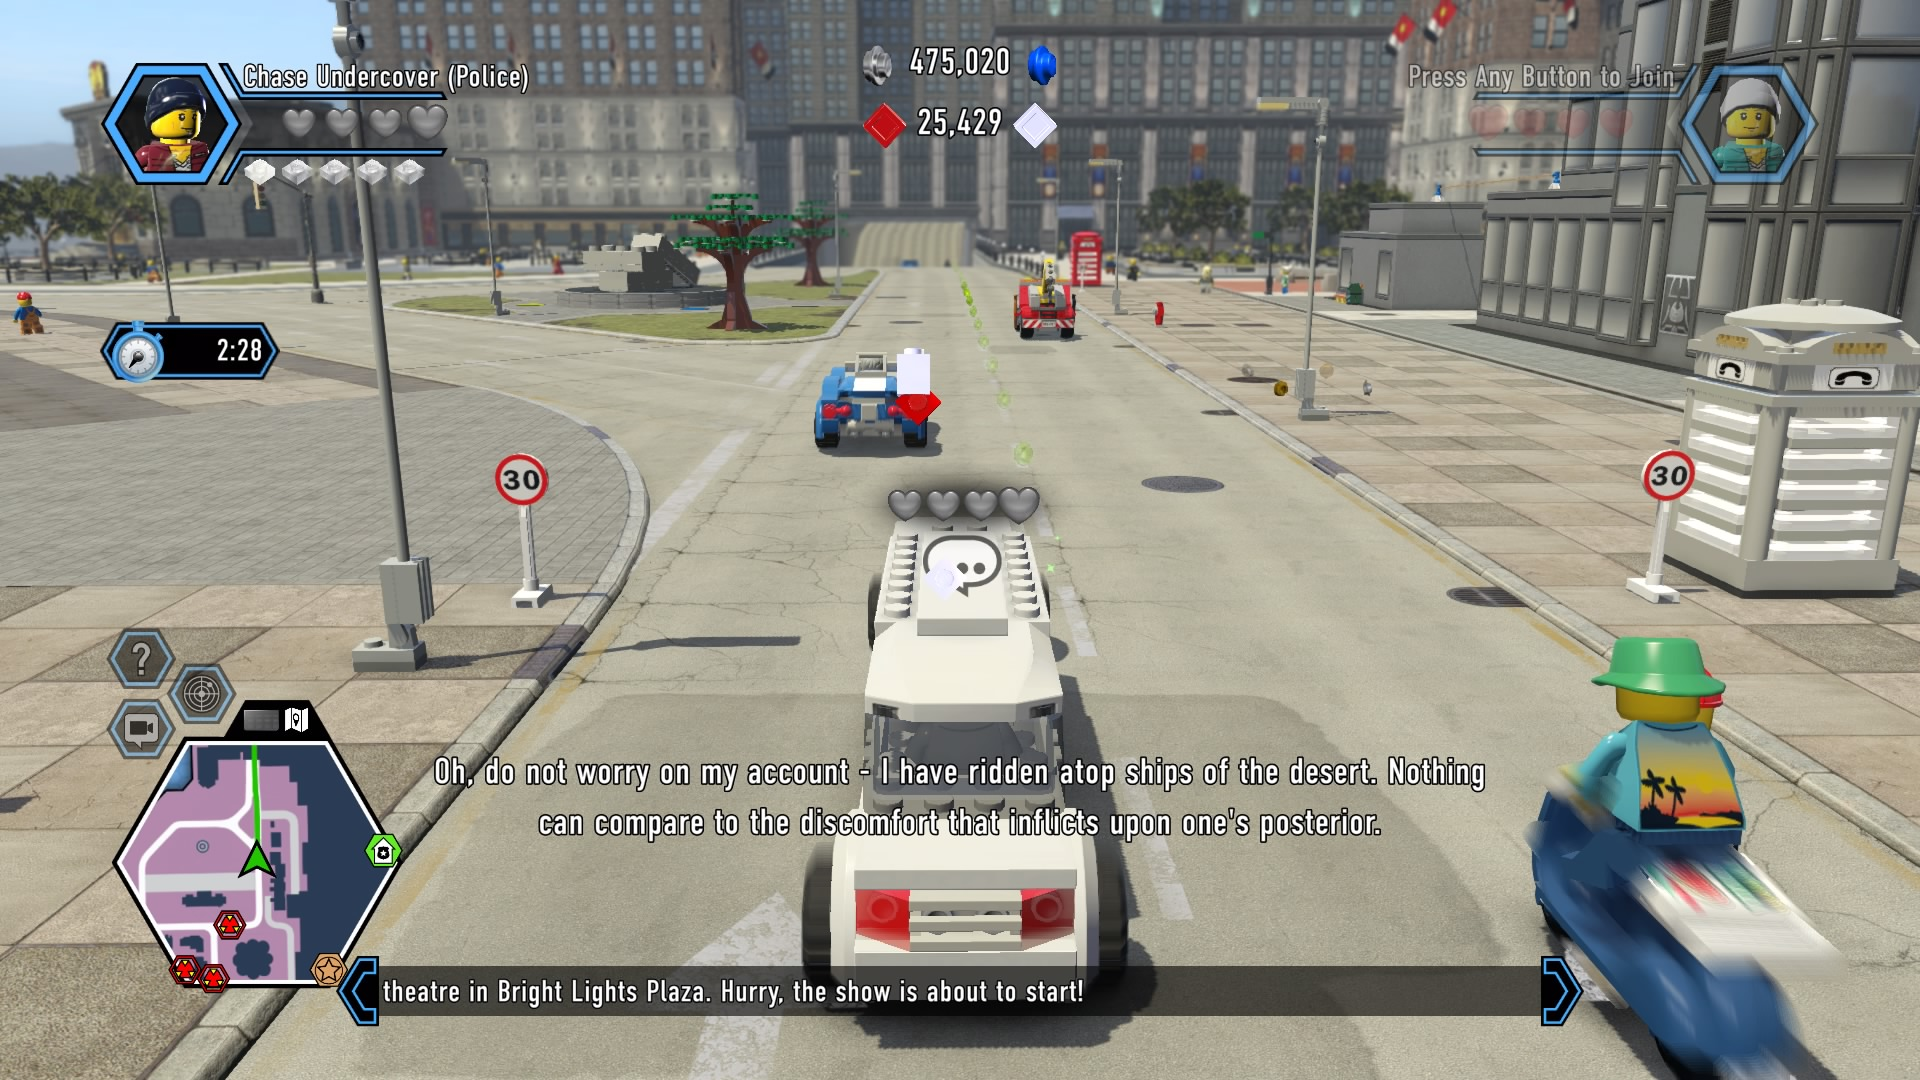 Lego City Undercover Complete Walkthrough Chapter 5 Guide Walkthroughs The Escapist